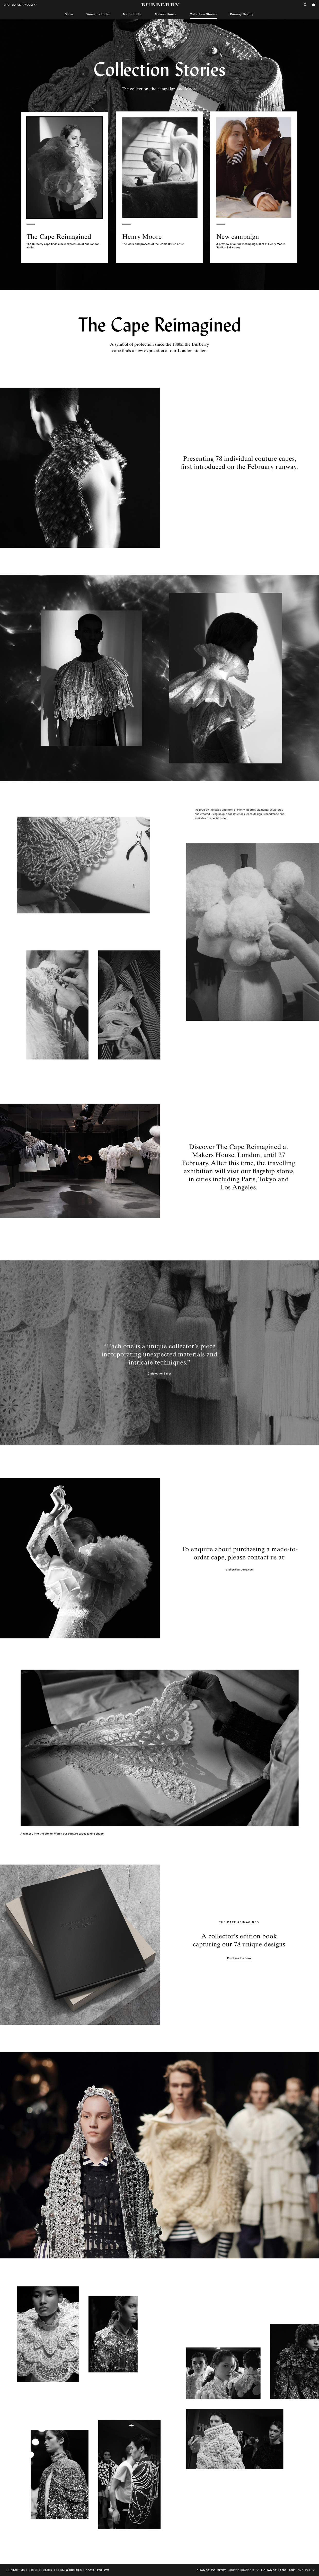 Couture Capes - Collection Stories page